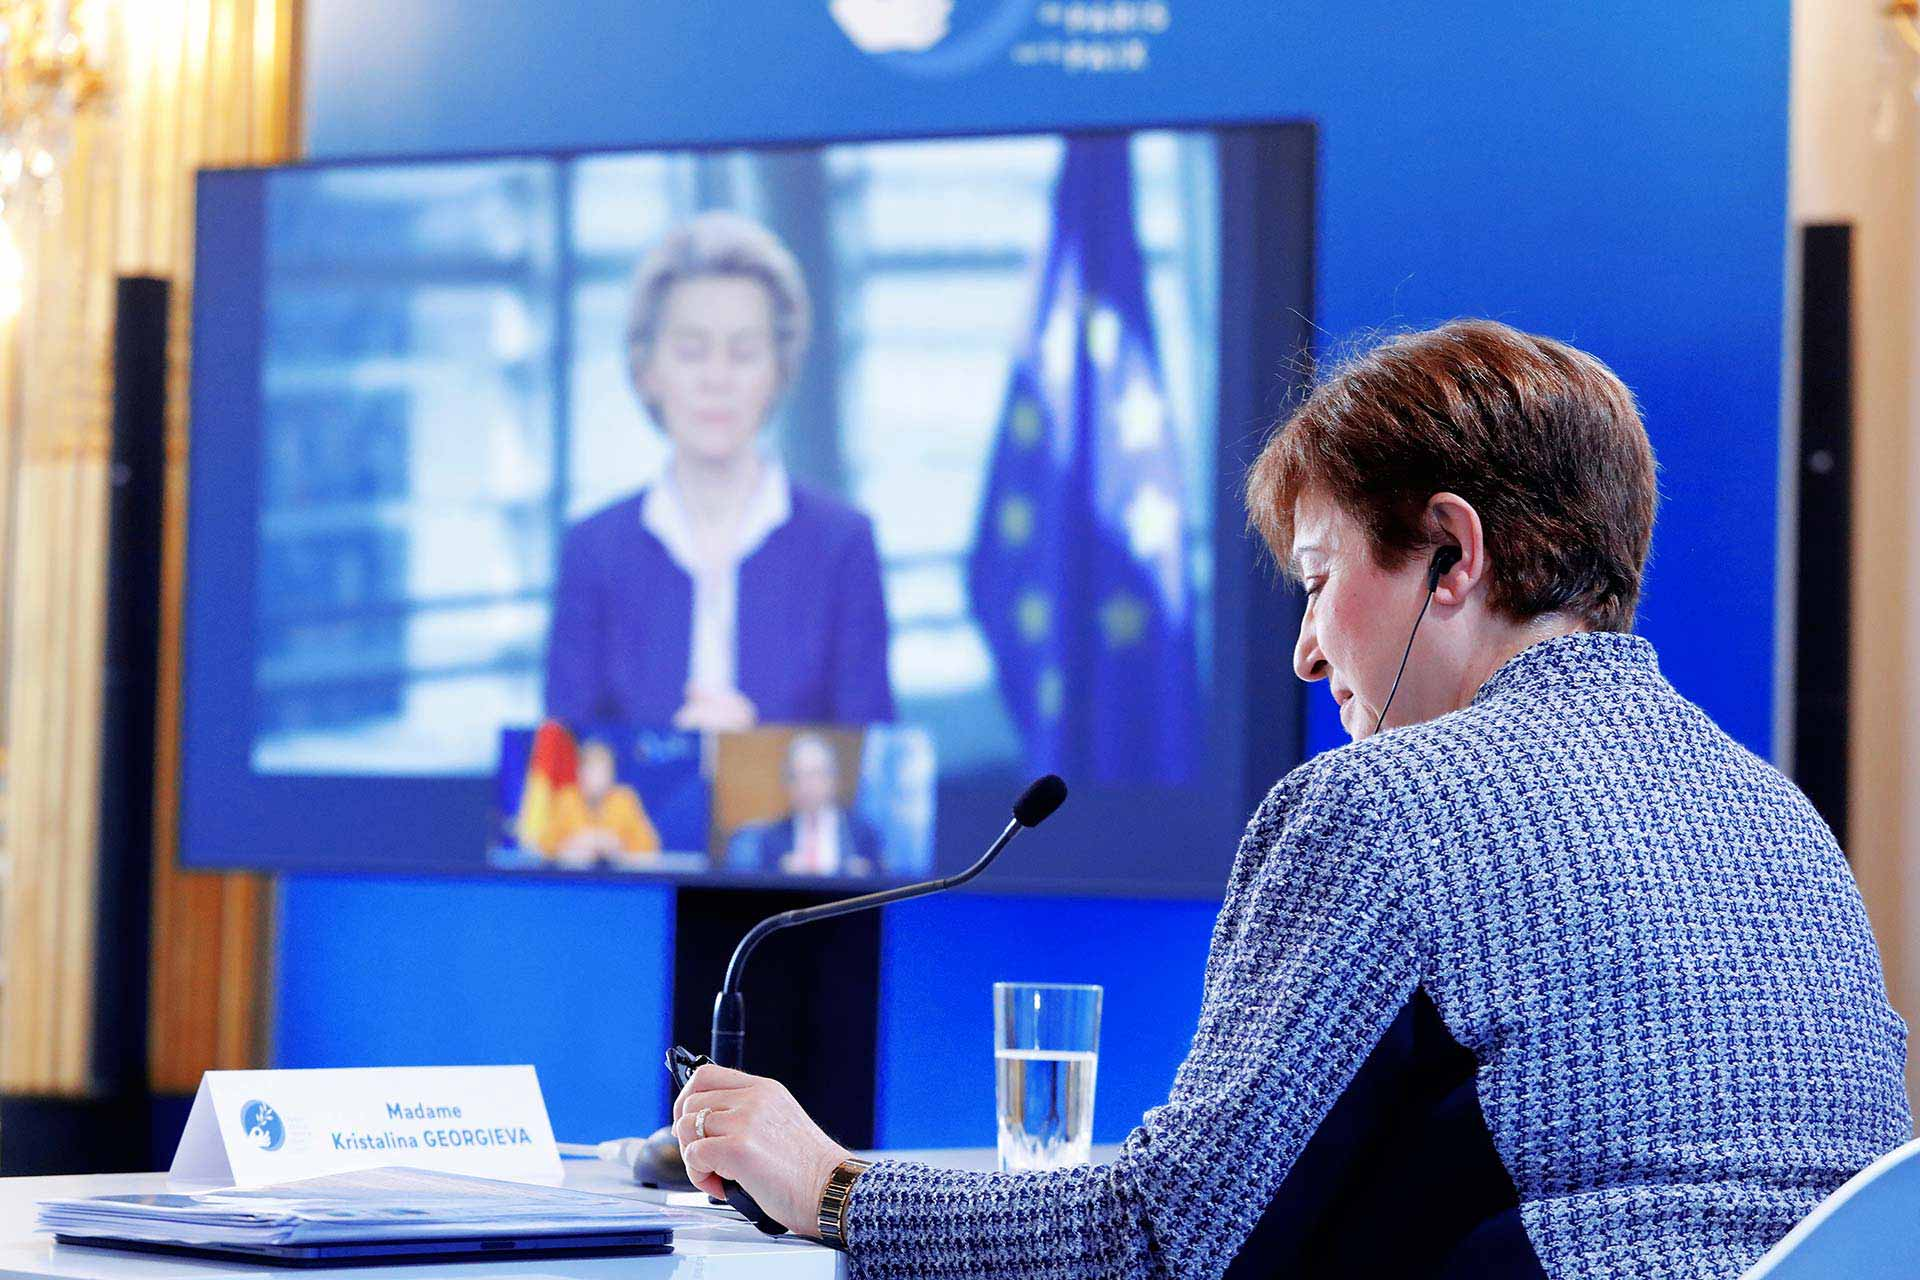 Ms Ursula VON DER LEYEN, President of the European Commission; Ms Kristalina GEORGIEVA, Managing Director of the IMF